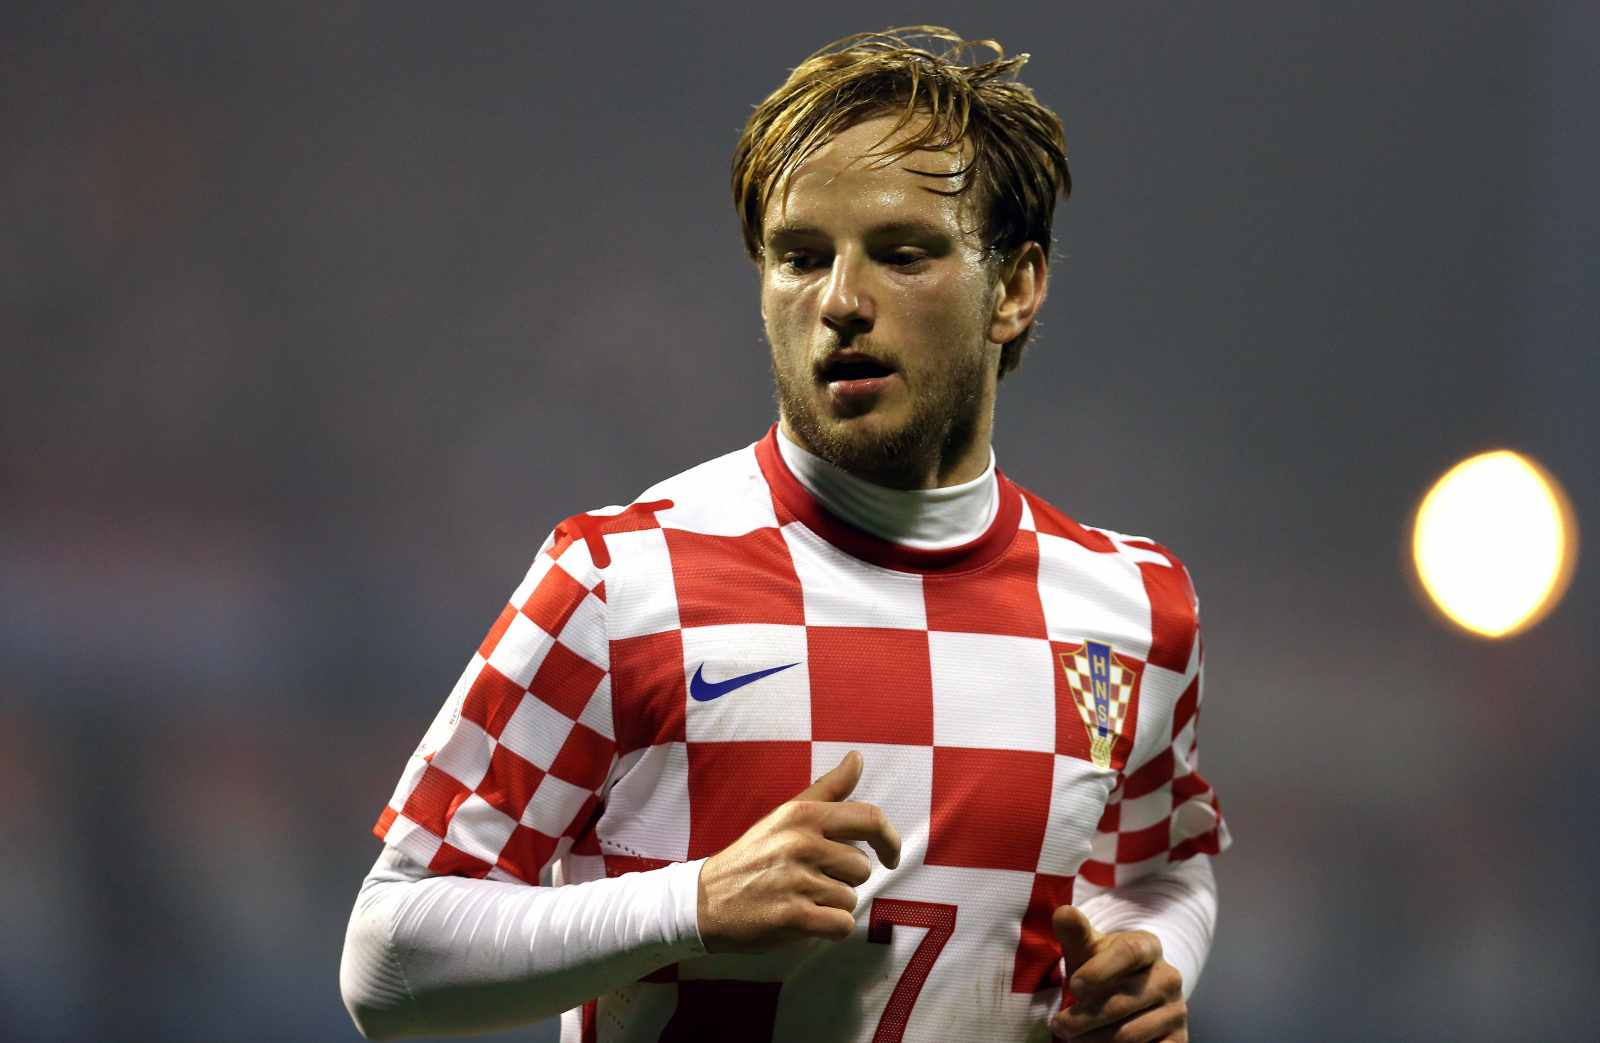 Ivan Rakitic, Croatia midfielder at the World Cup 2014